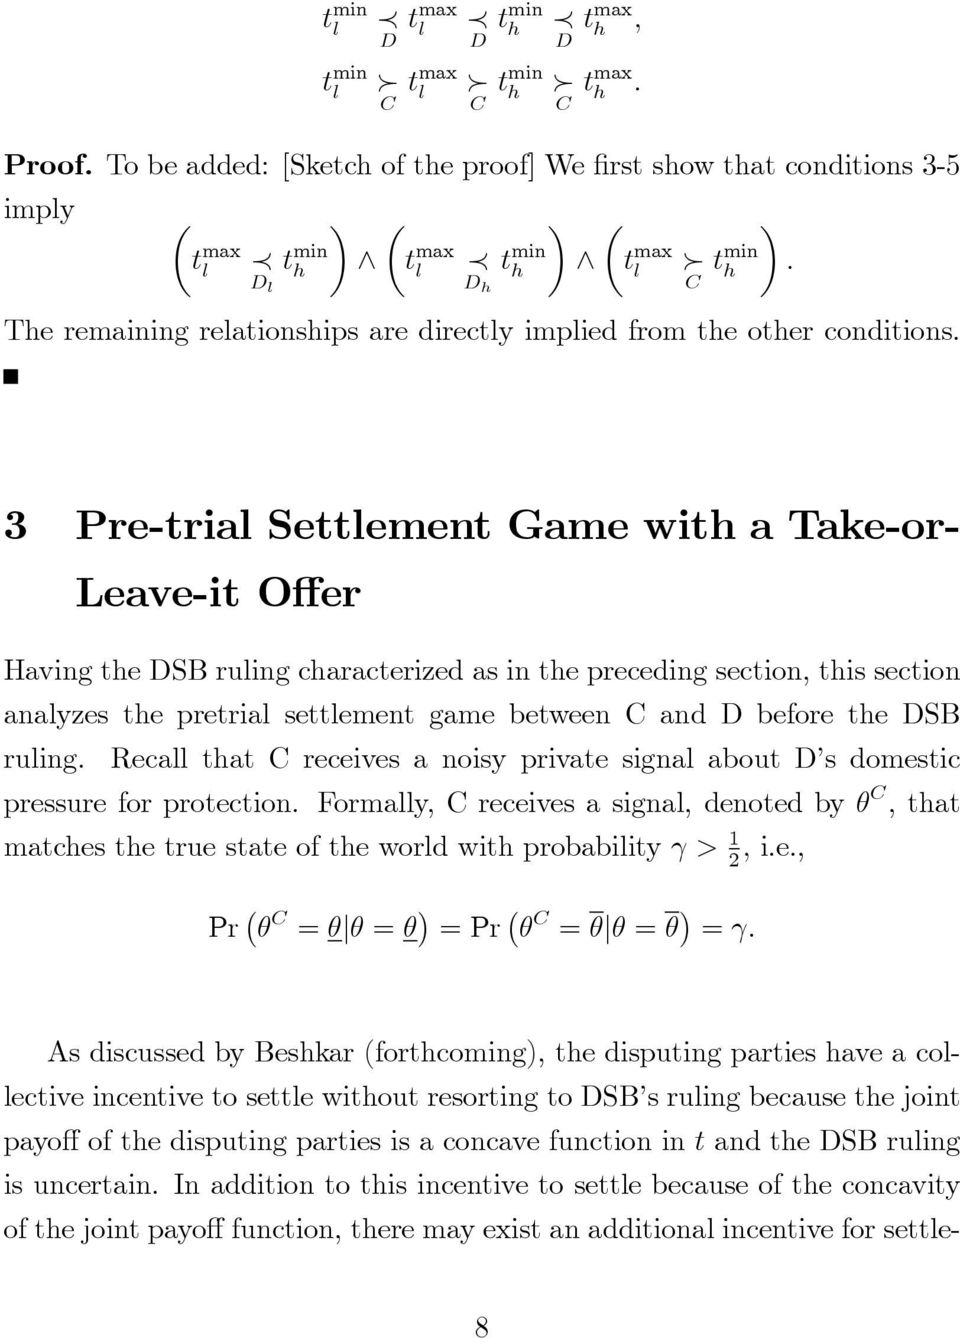 3 Pre-trial Settlement Game wit a Take-or- Leave-it O er Having te DSB ruling caracterized as in te preceding section, tis section analyzes te pretrial settlement game between C and D before te DSB